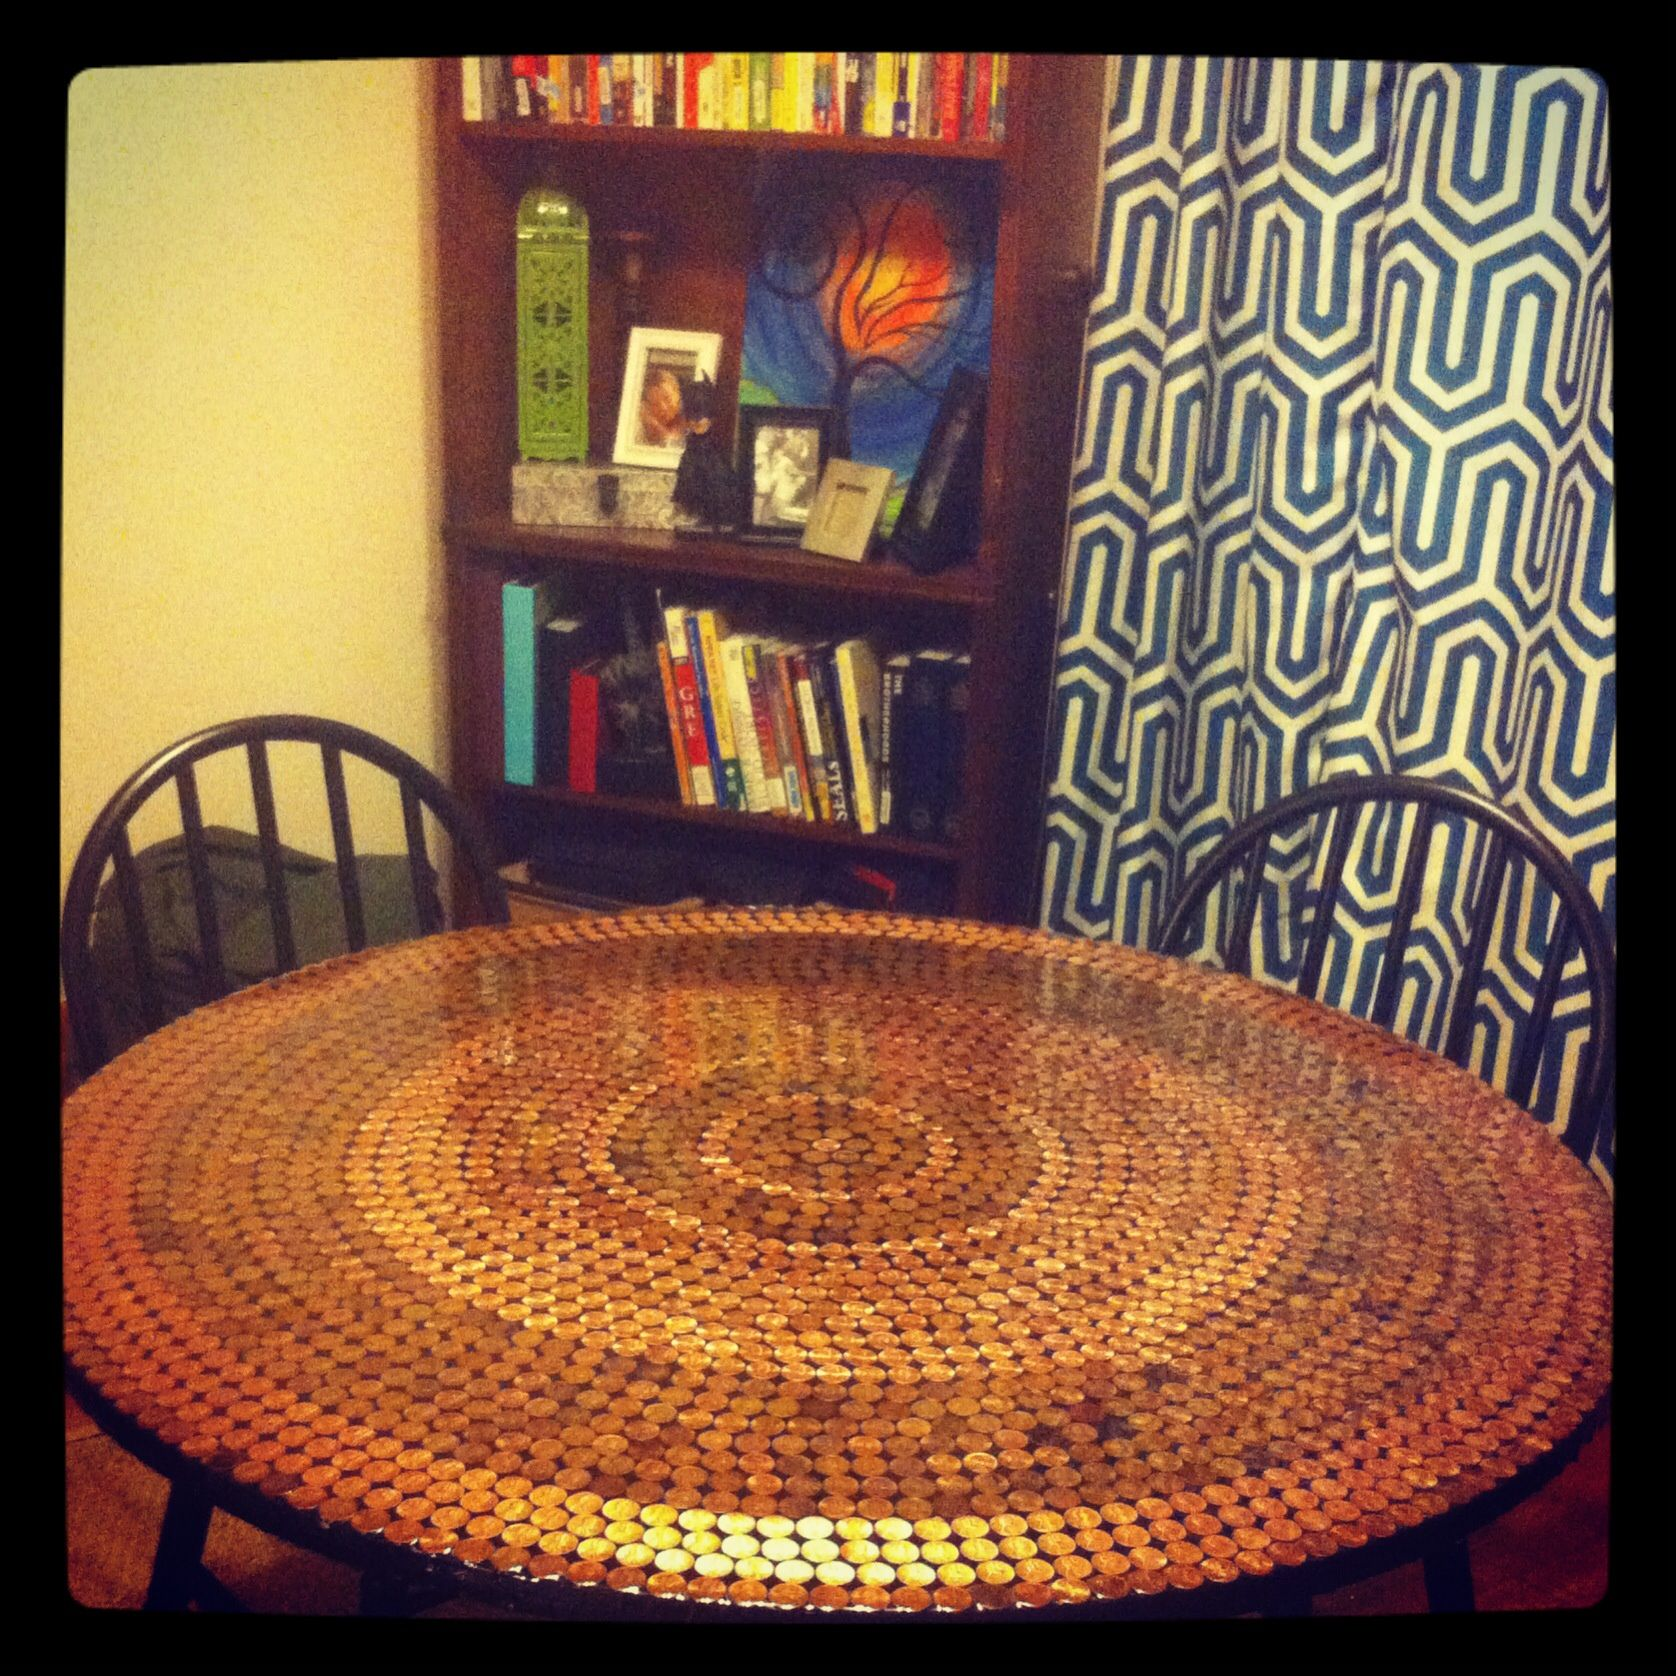 Handmade Penny Table Resin Poured Overtop Penny Decor